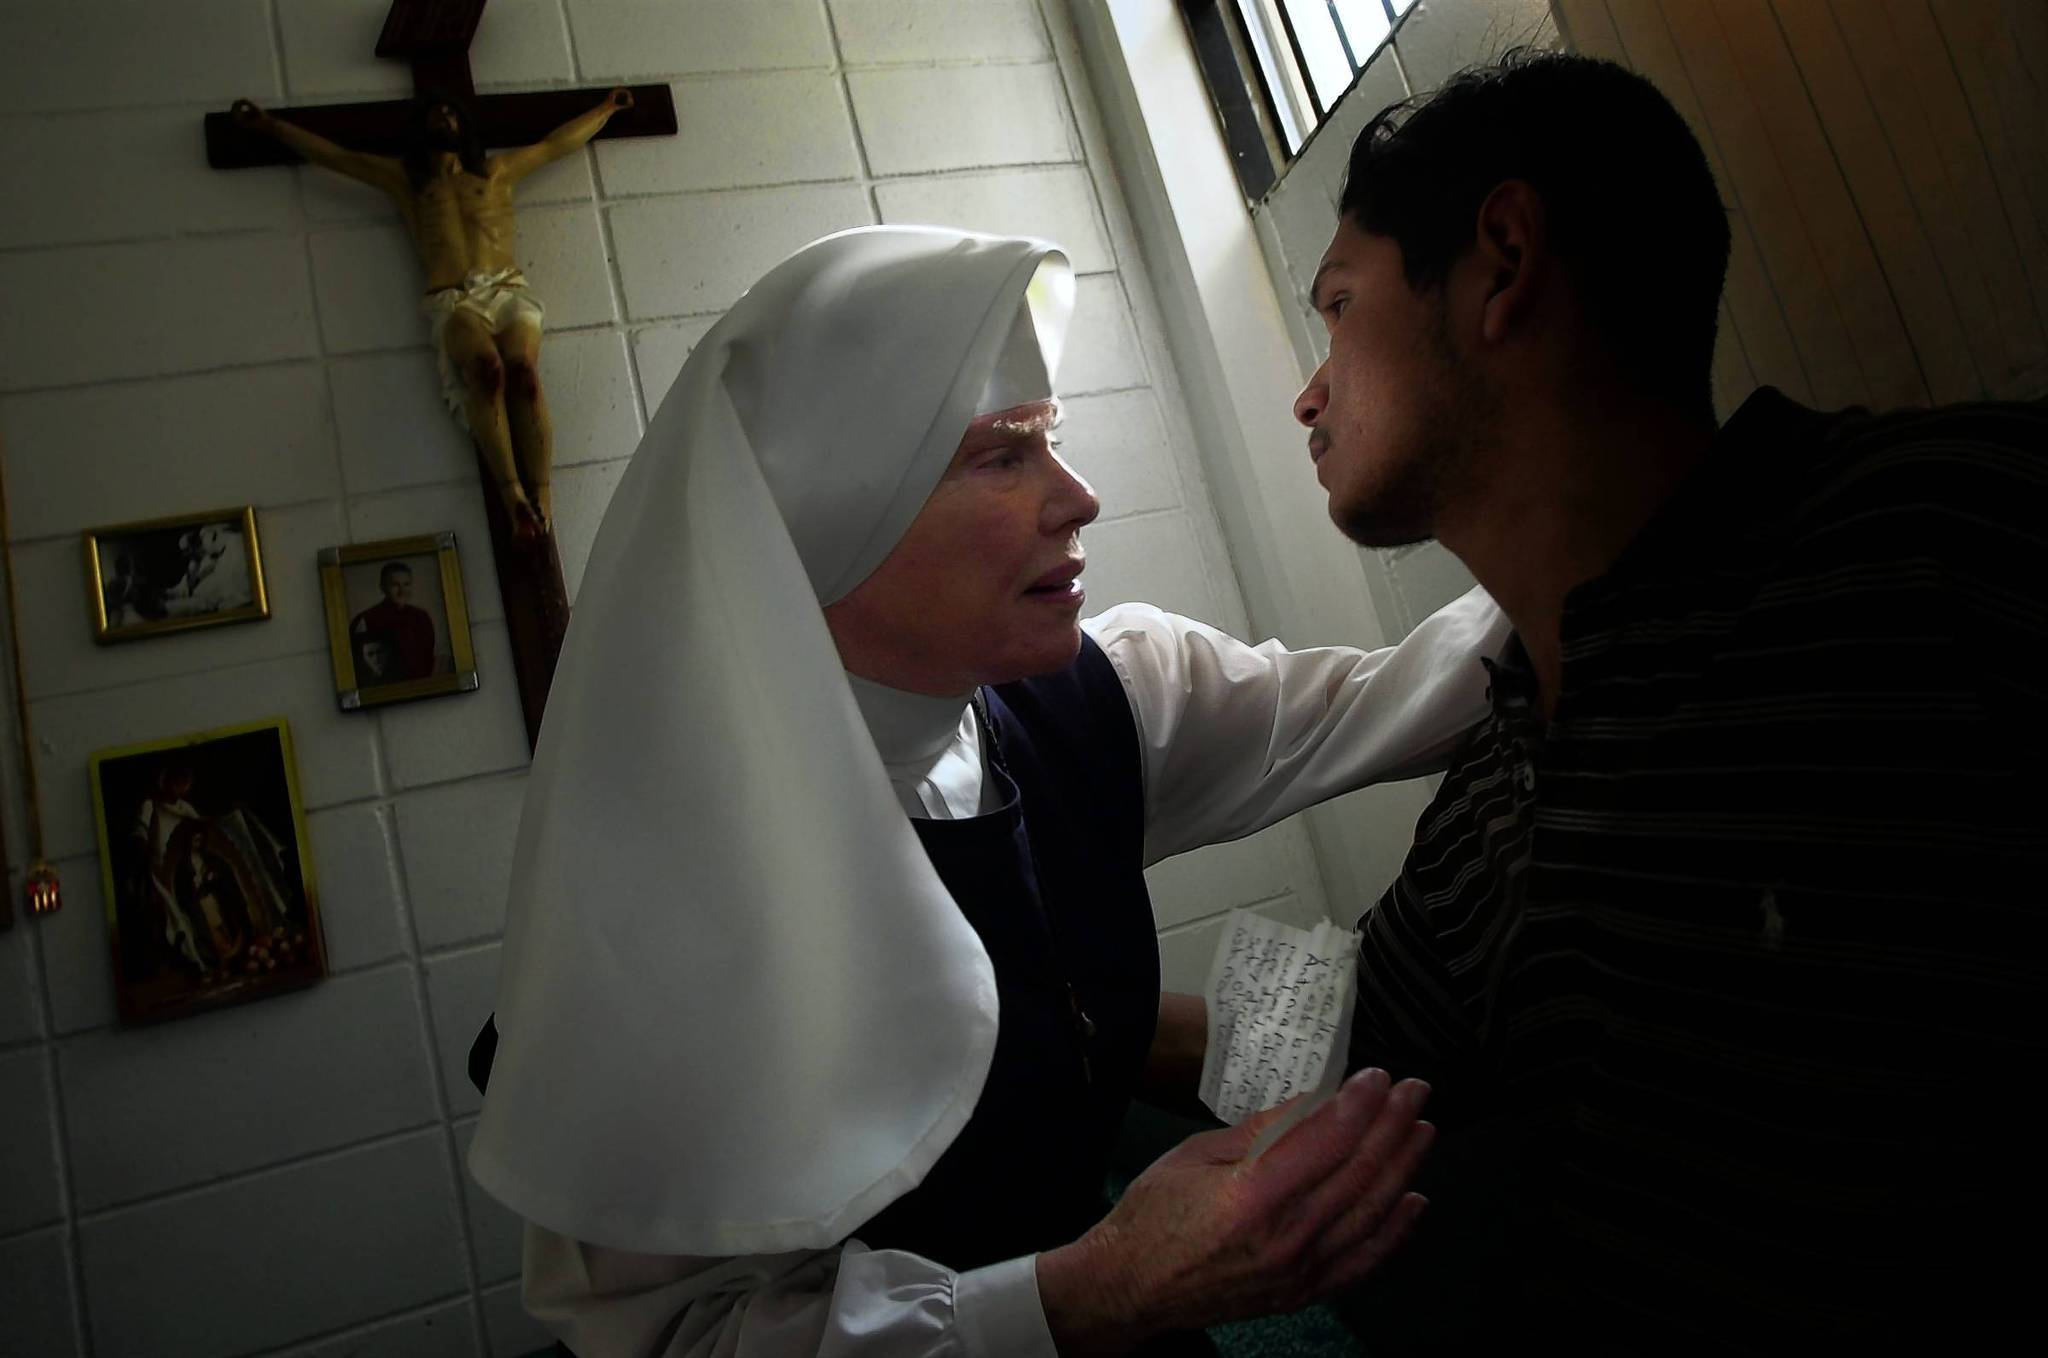 In this photo from 2002, Sister Antonia Brenner consoles inmate Jorge Villalobos inside her converted cell at the notorious La Mesa penitentiary in Tijuana. Brenner died Thursday at the age of 86.